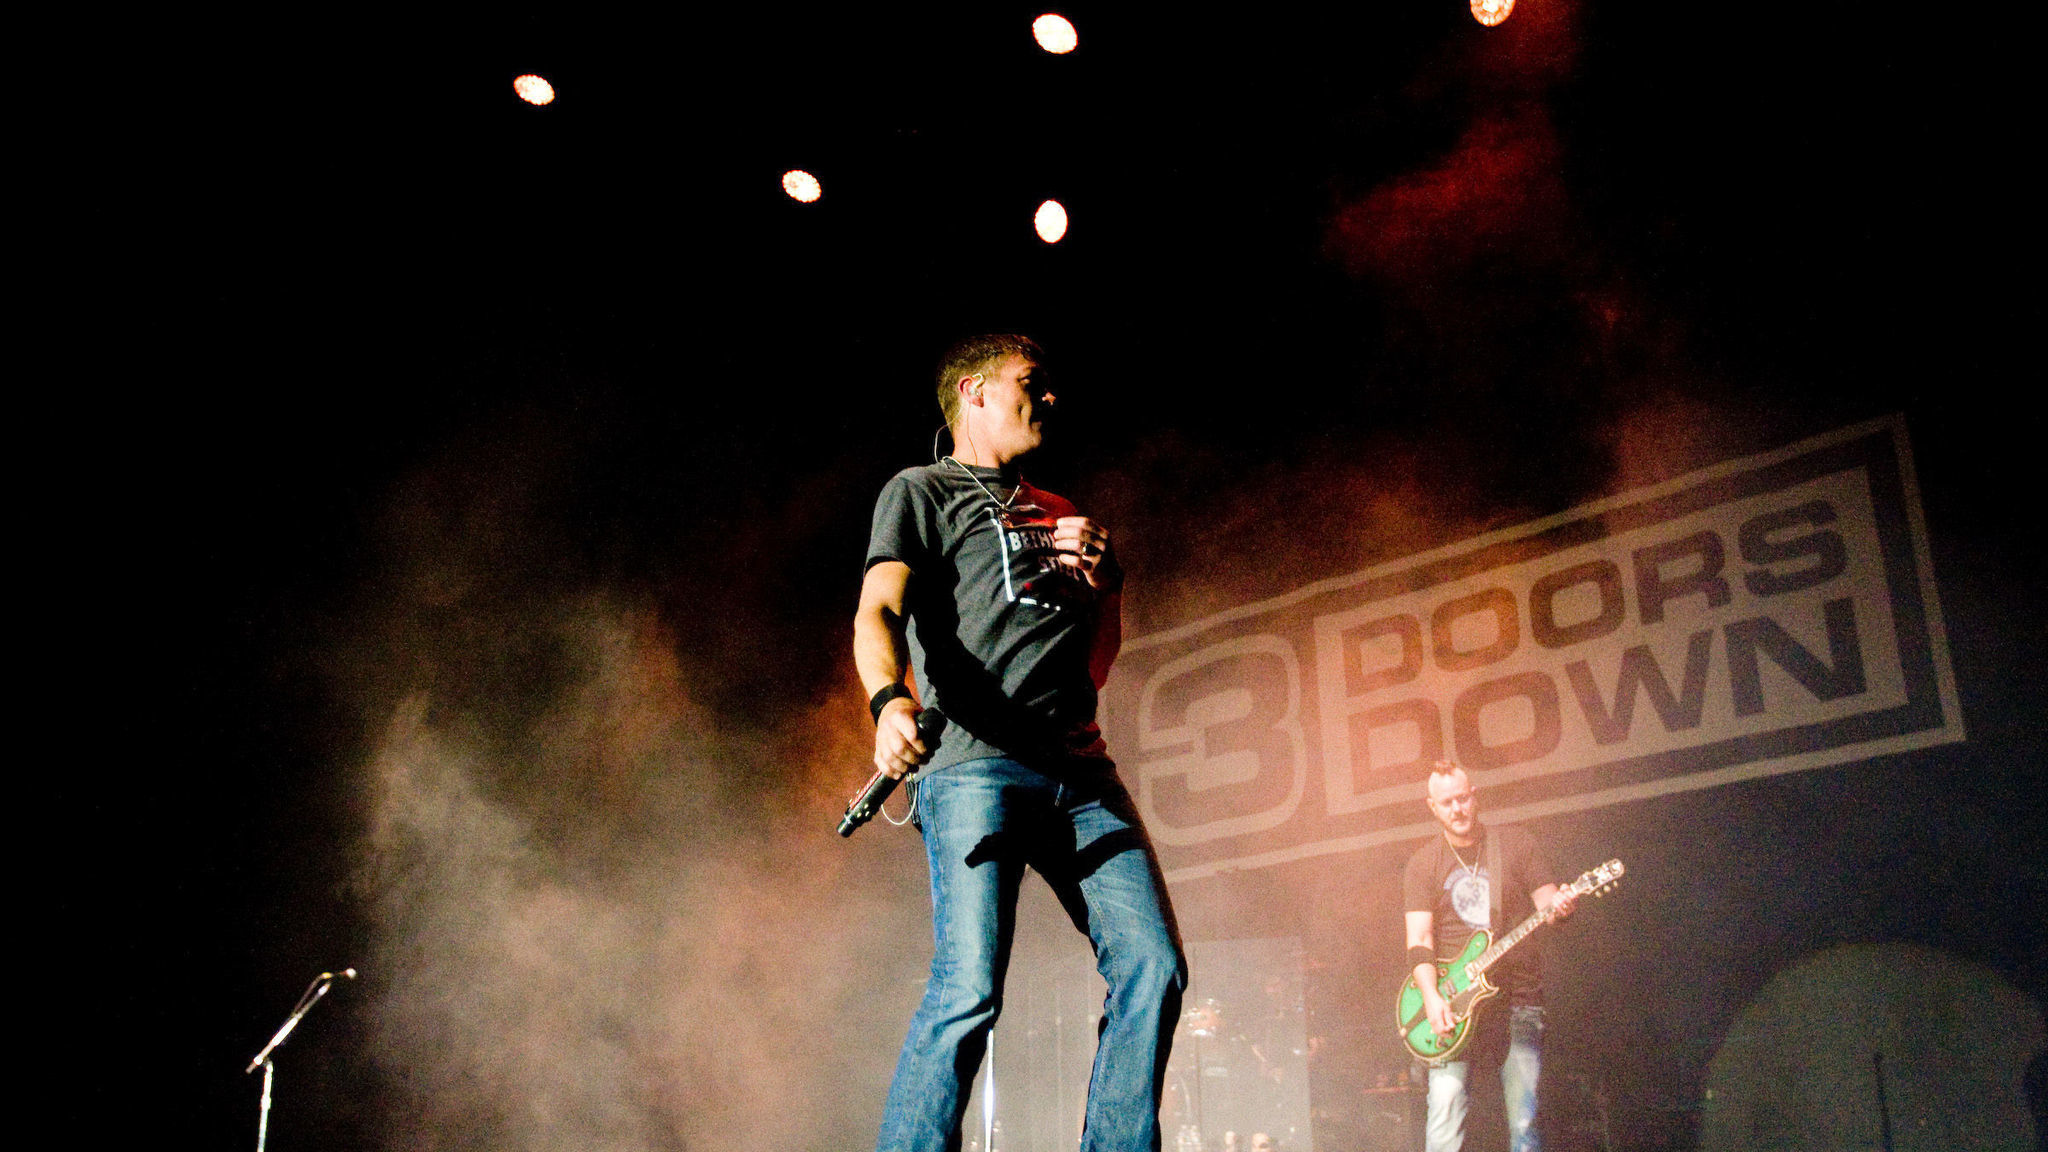 REVIEW: 3 Doors Down sounds ready to open a new door at Musikfest